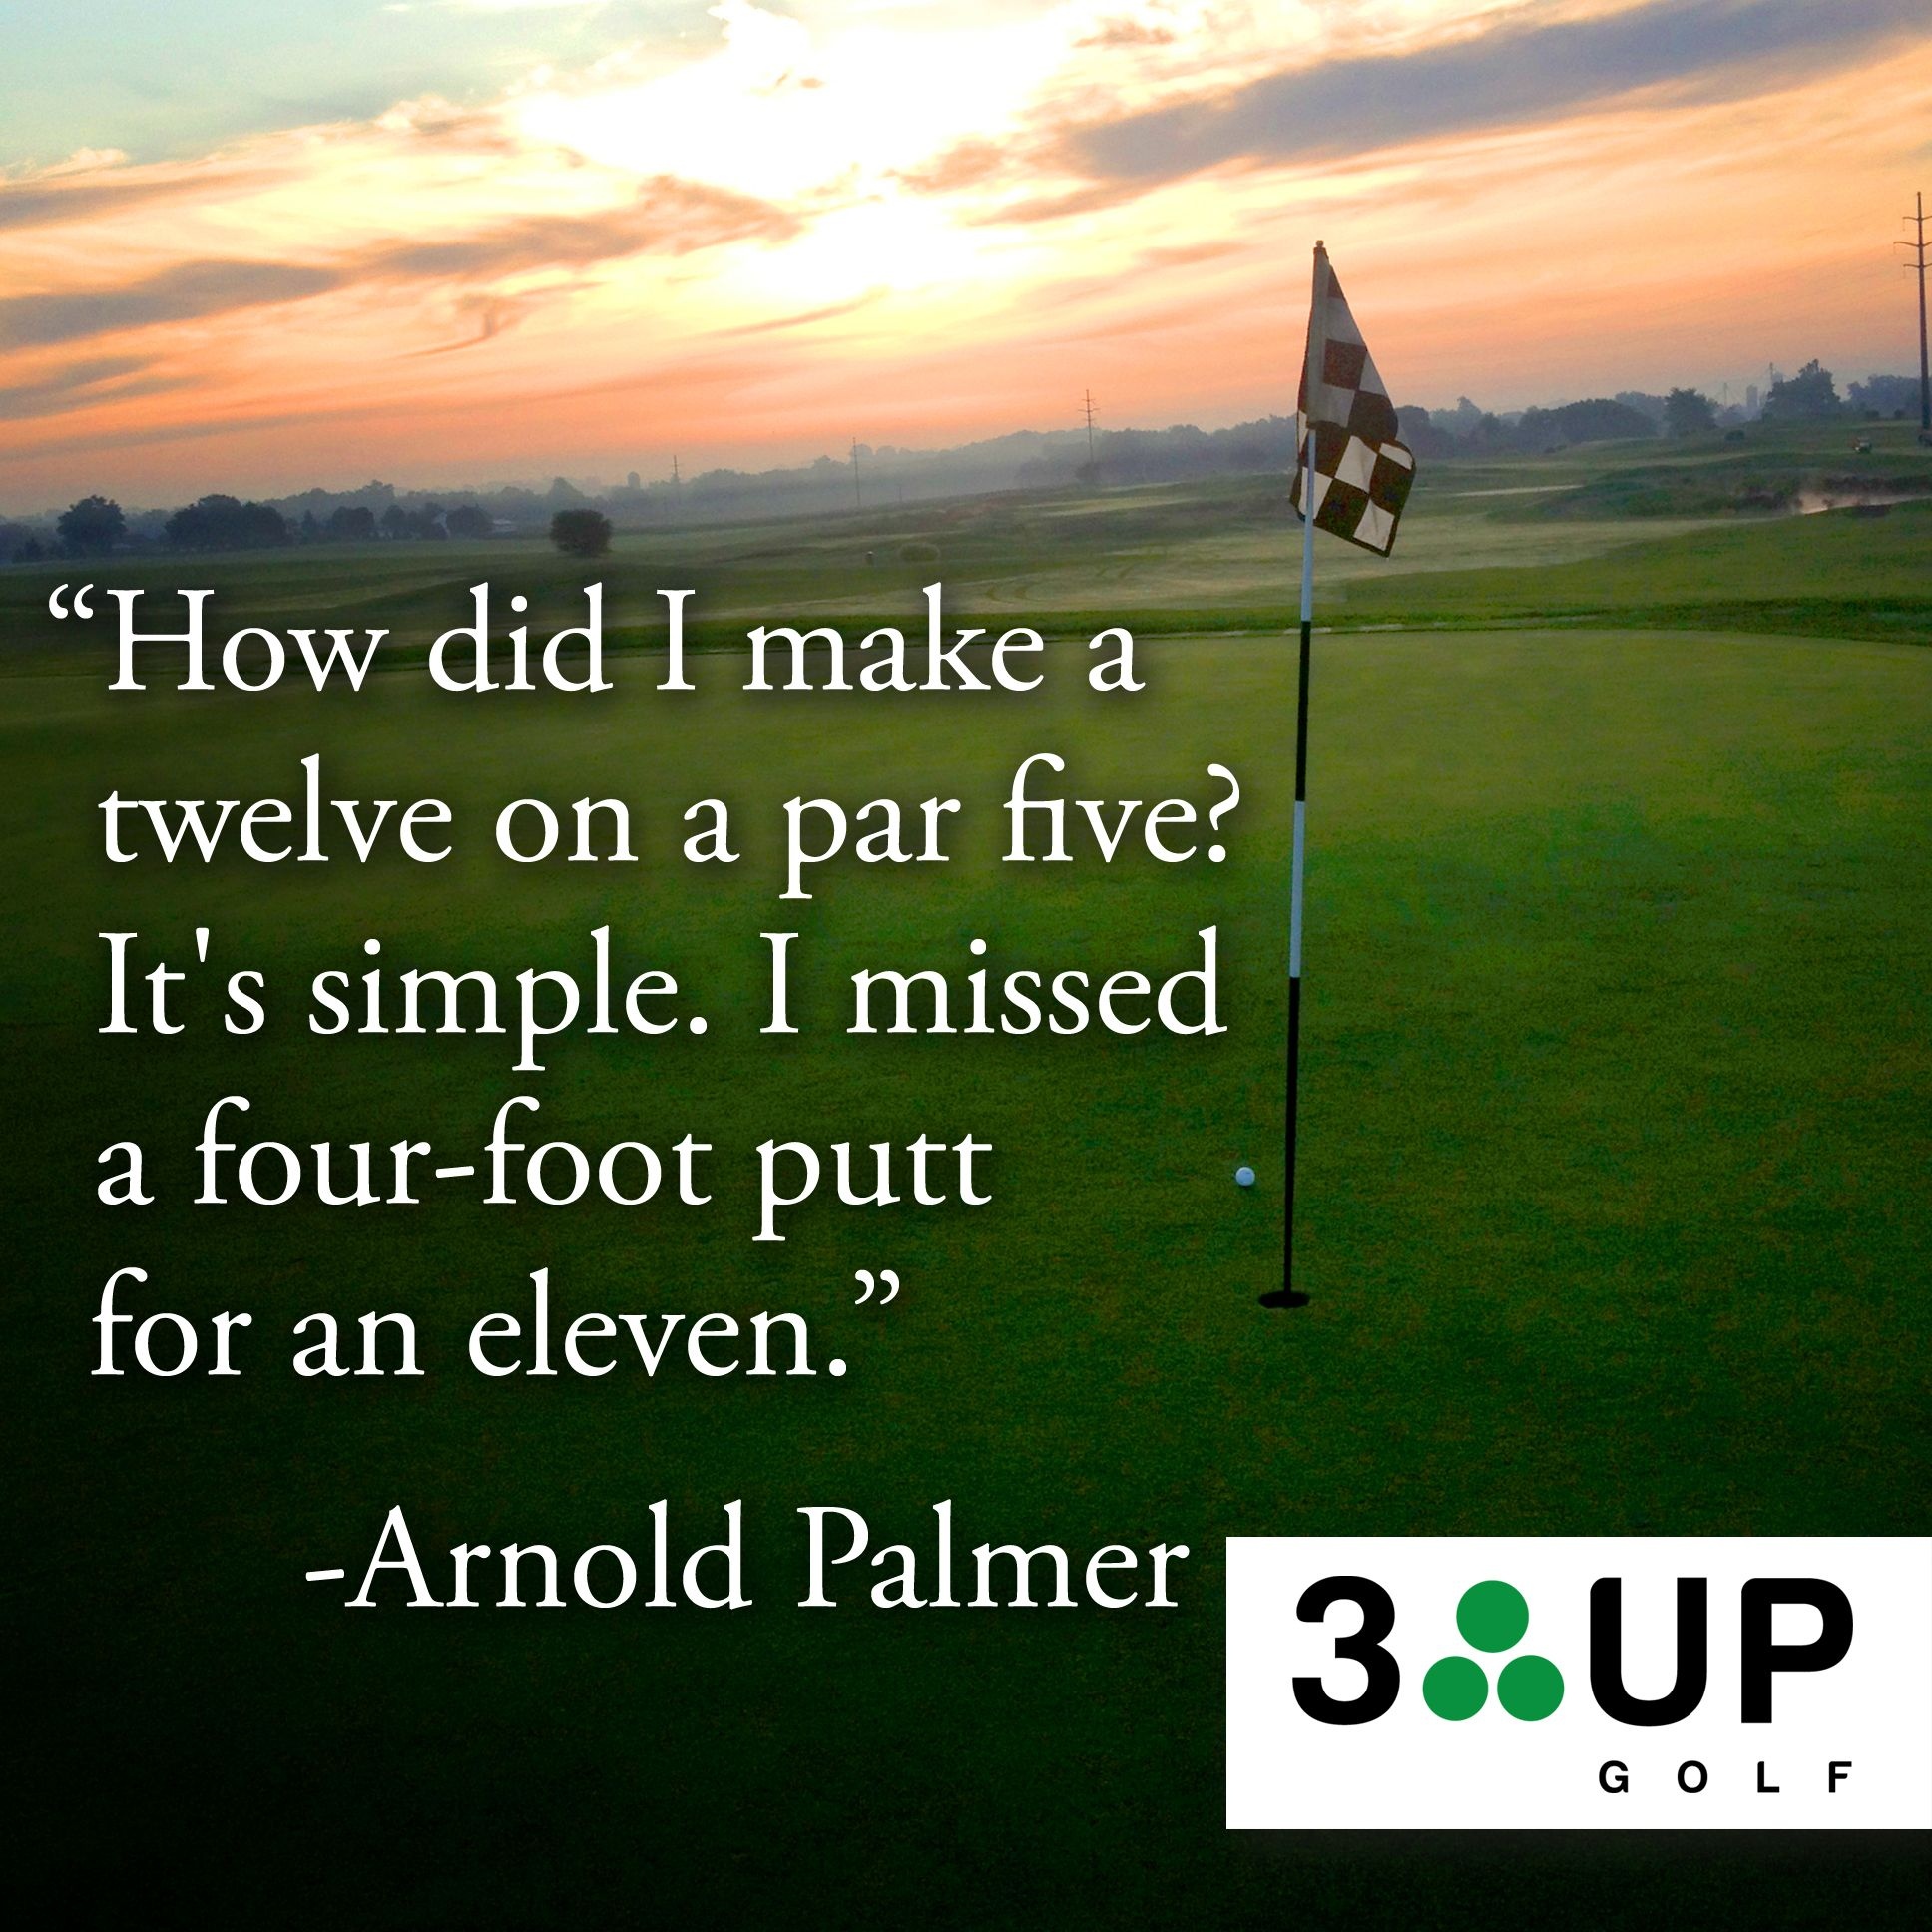 Arnold Palmer Quotes How Id I Make A Twelve On A Par Five It's Simplei Missed A Four